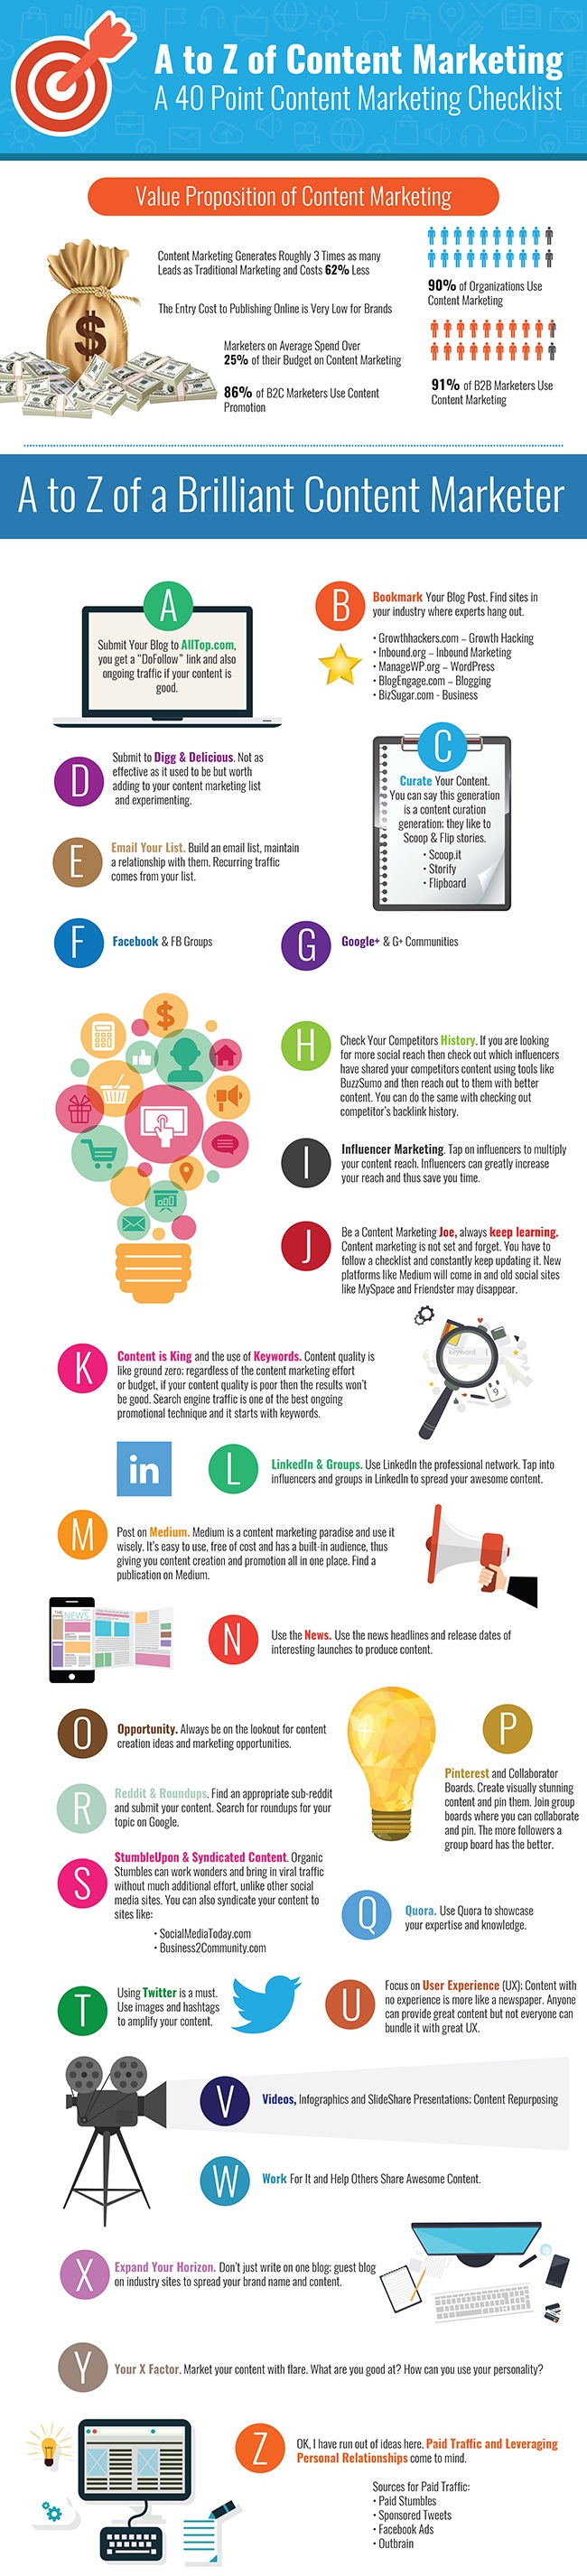 Content Marketing Sources from A to Z